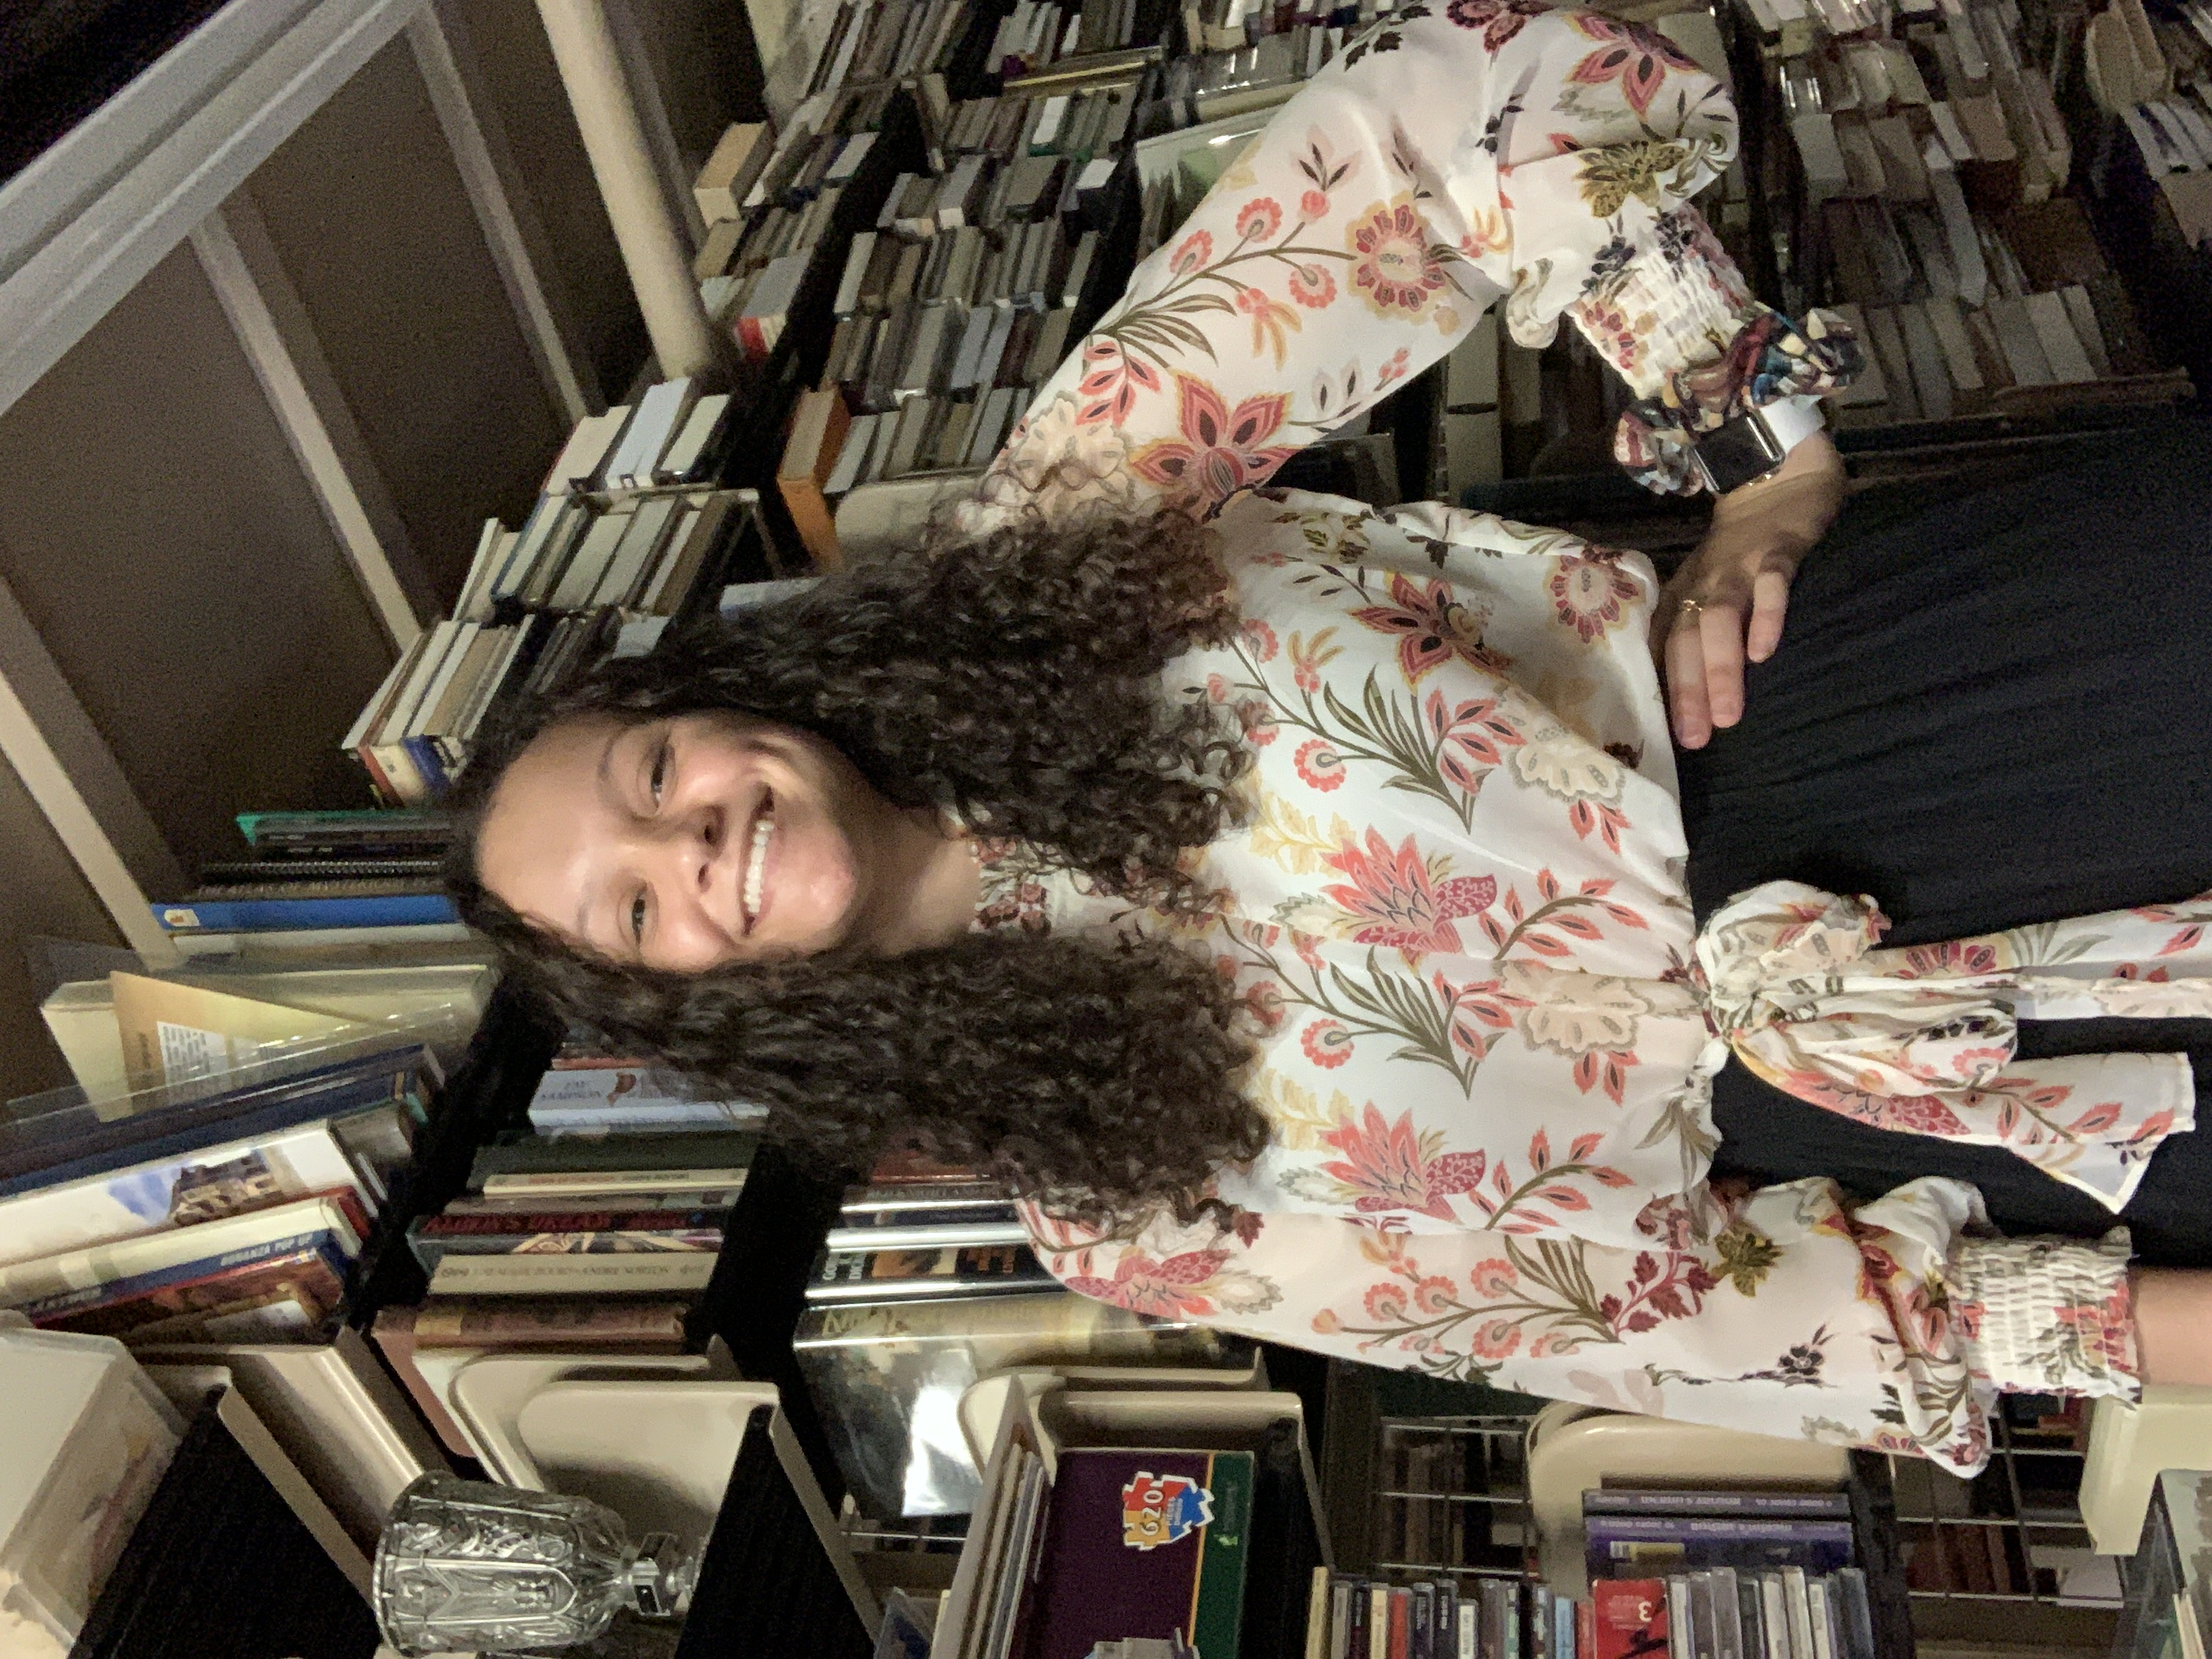 Ayiana Crabtree standing in front of shelves of books.